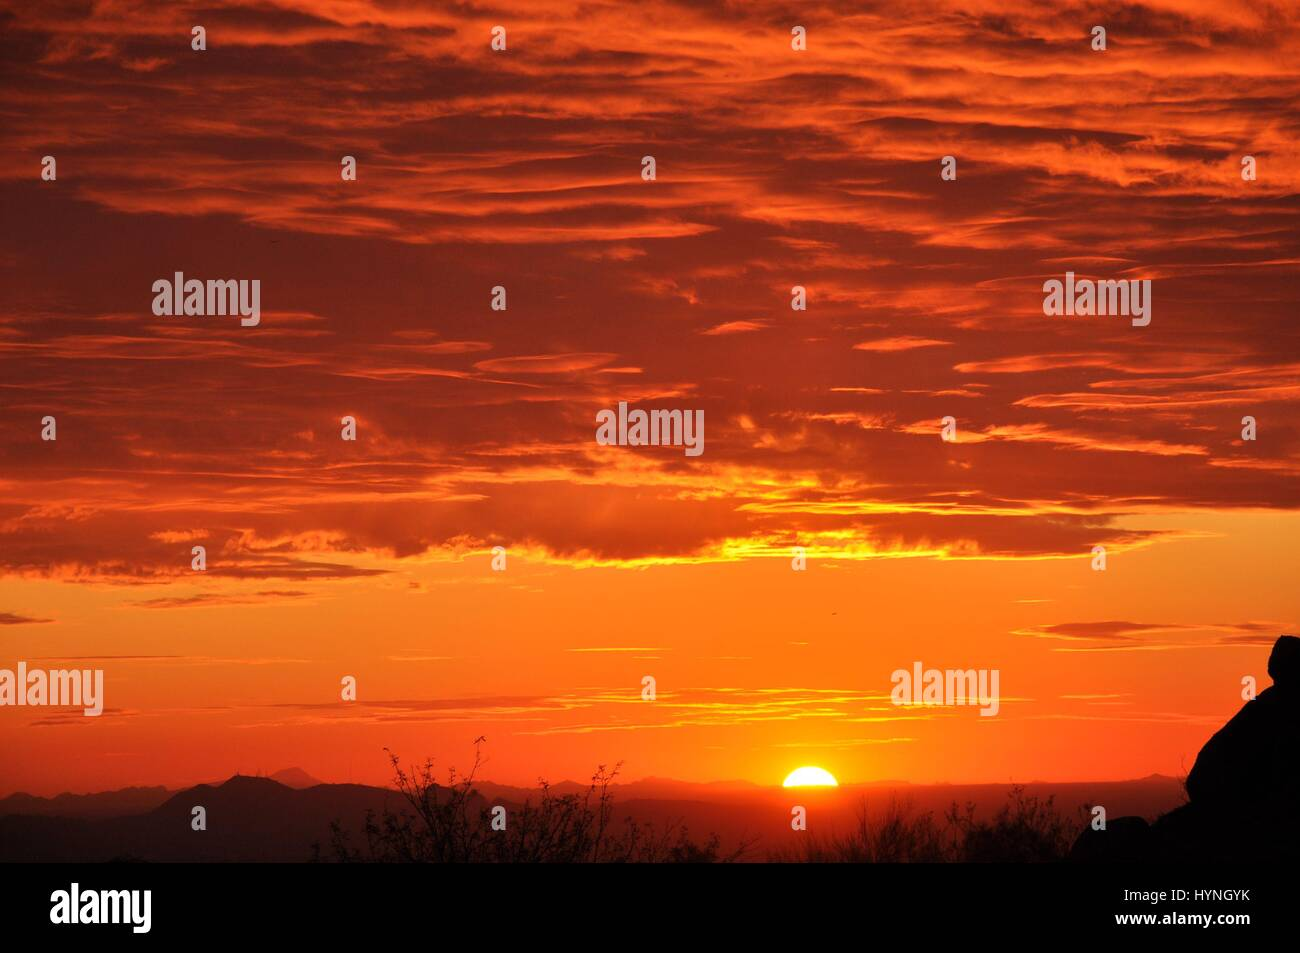 Beautiful Desert Scenes Shot in Arizona at Sunset Stock Photo